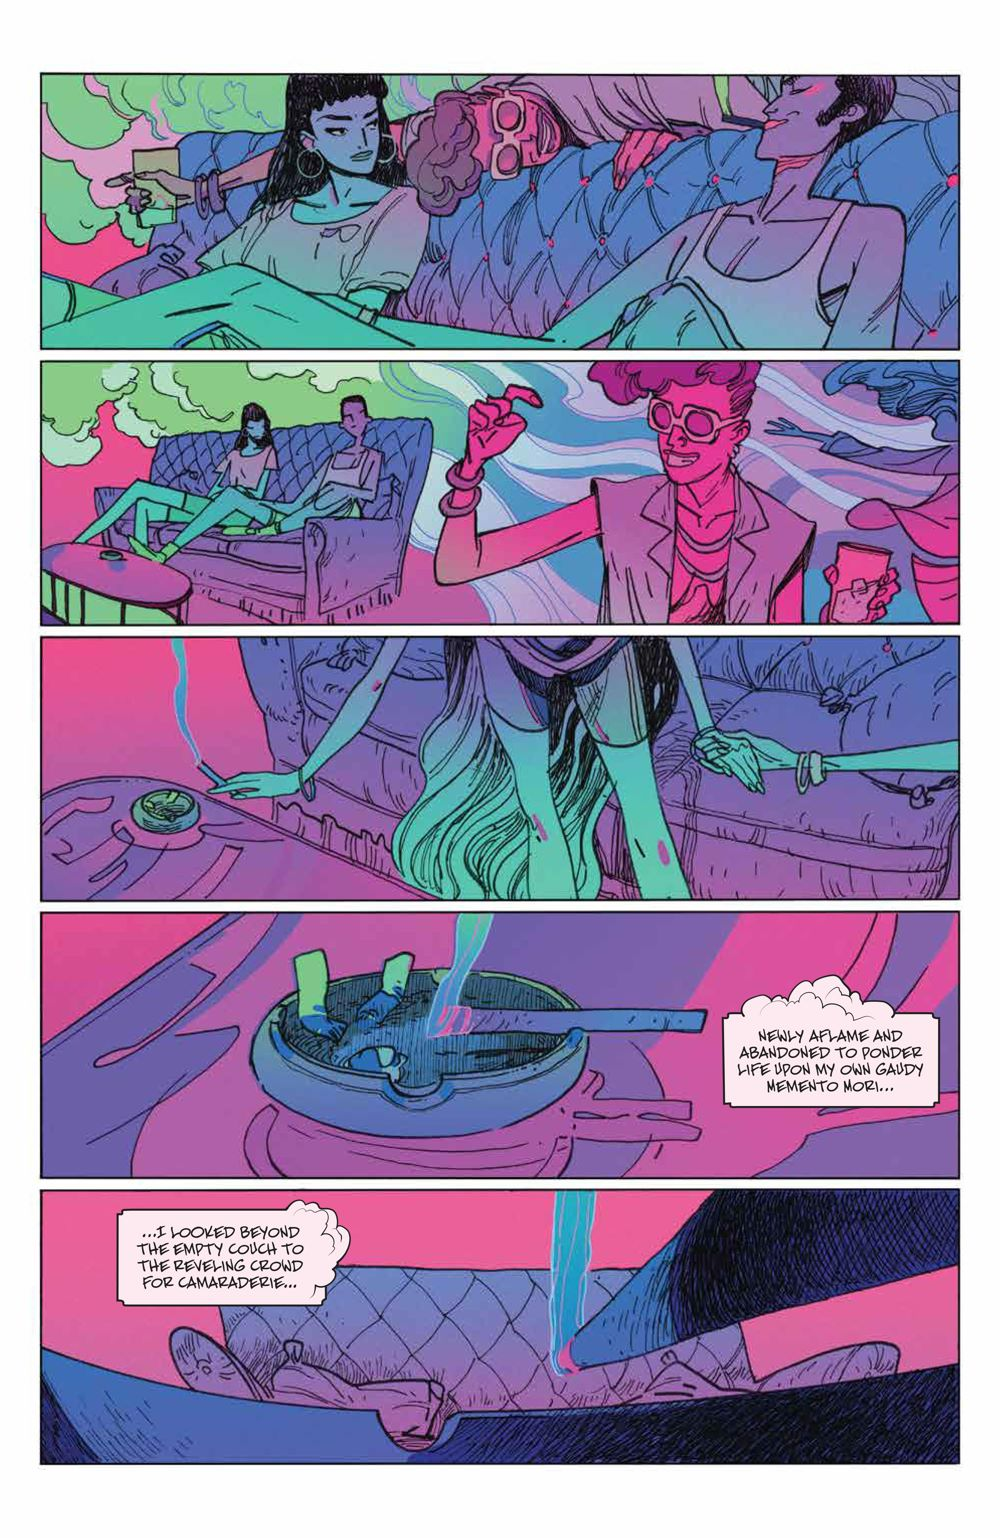 ManyDeathsLailaStarr_003_PRESS_5 ComicList Previews: THE MANY DEATHS OF LAILA STARR #3 (OF 5)